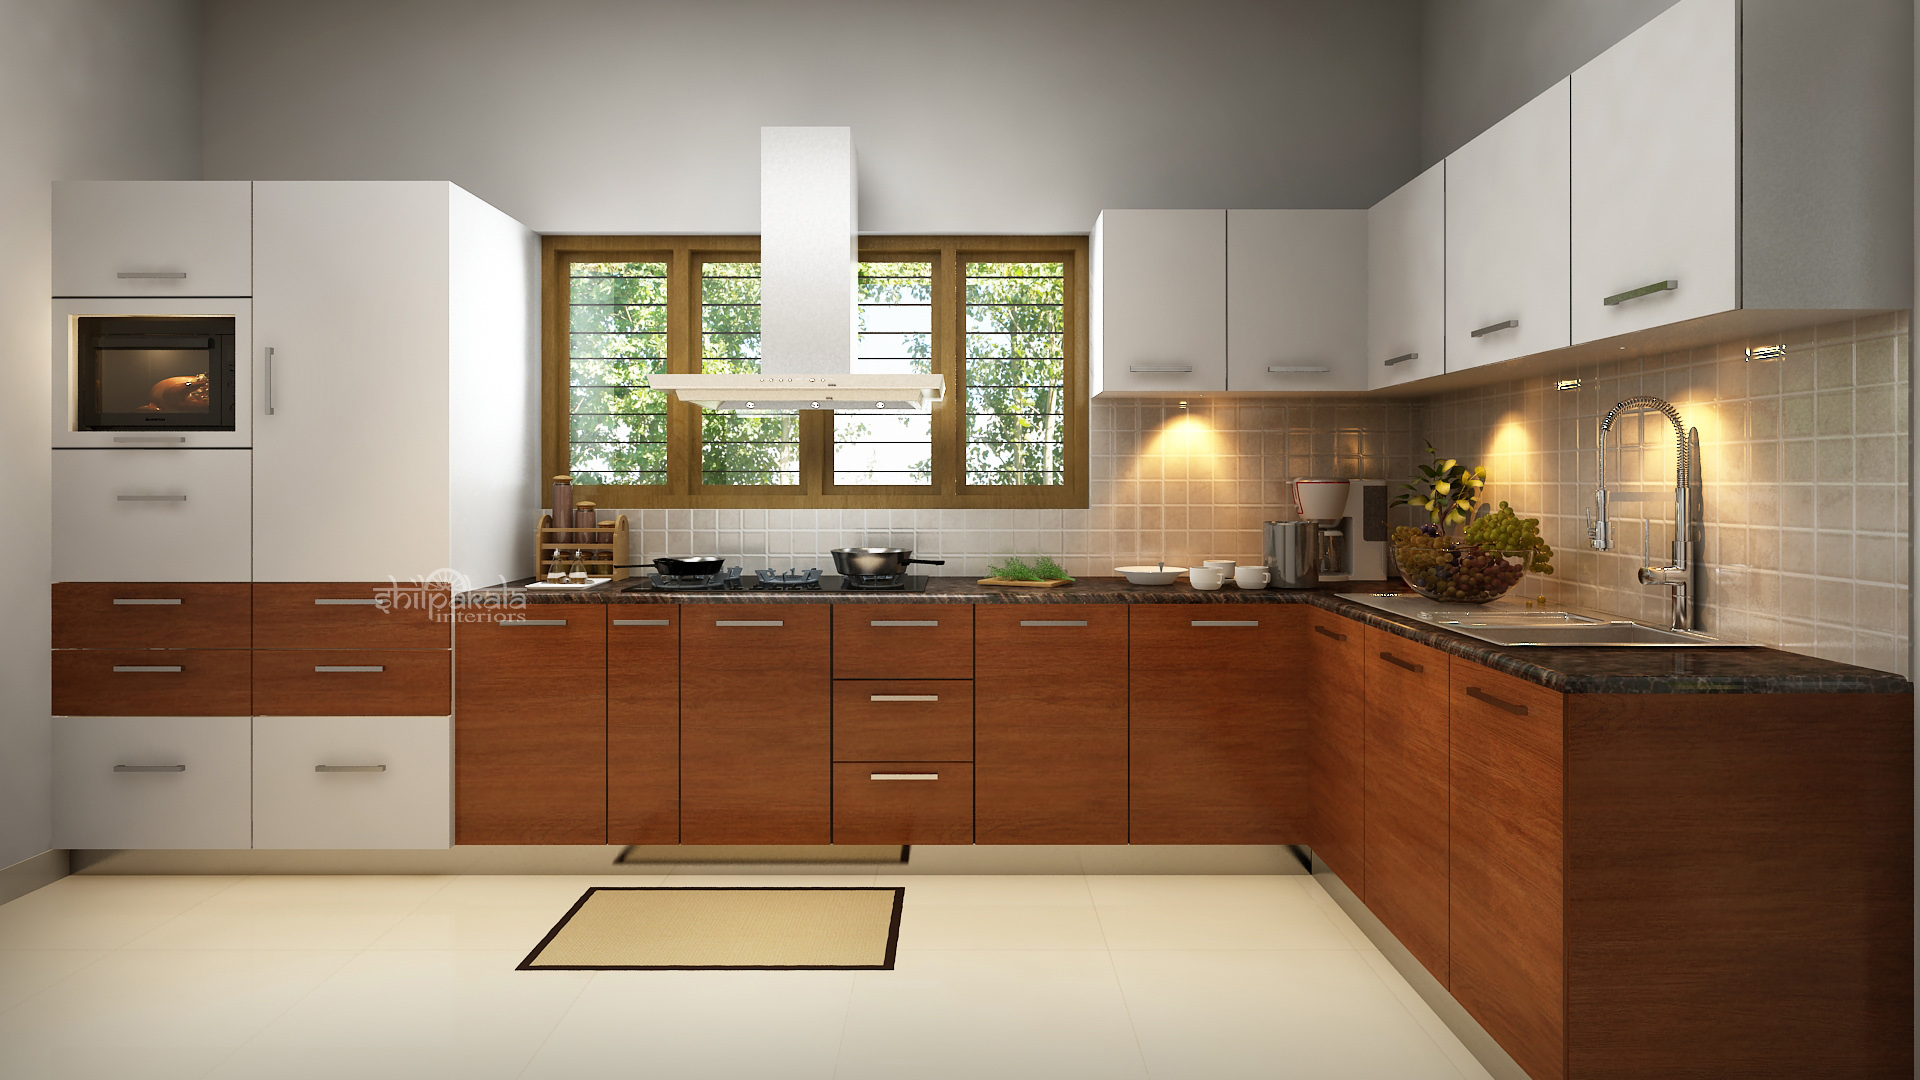 kitchen interiors designs kerala kitchen interior design images gallery 5381